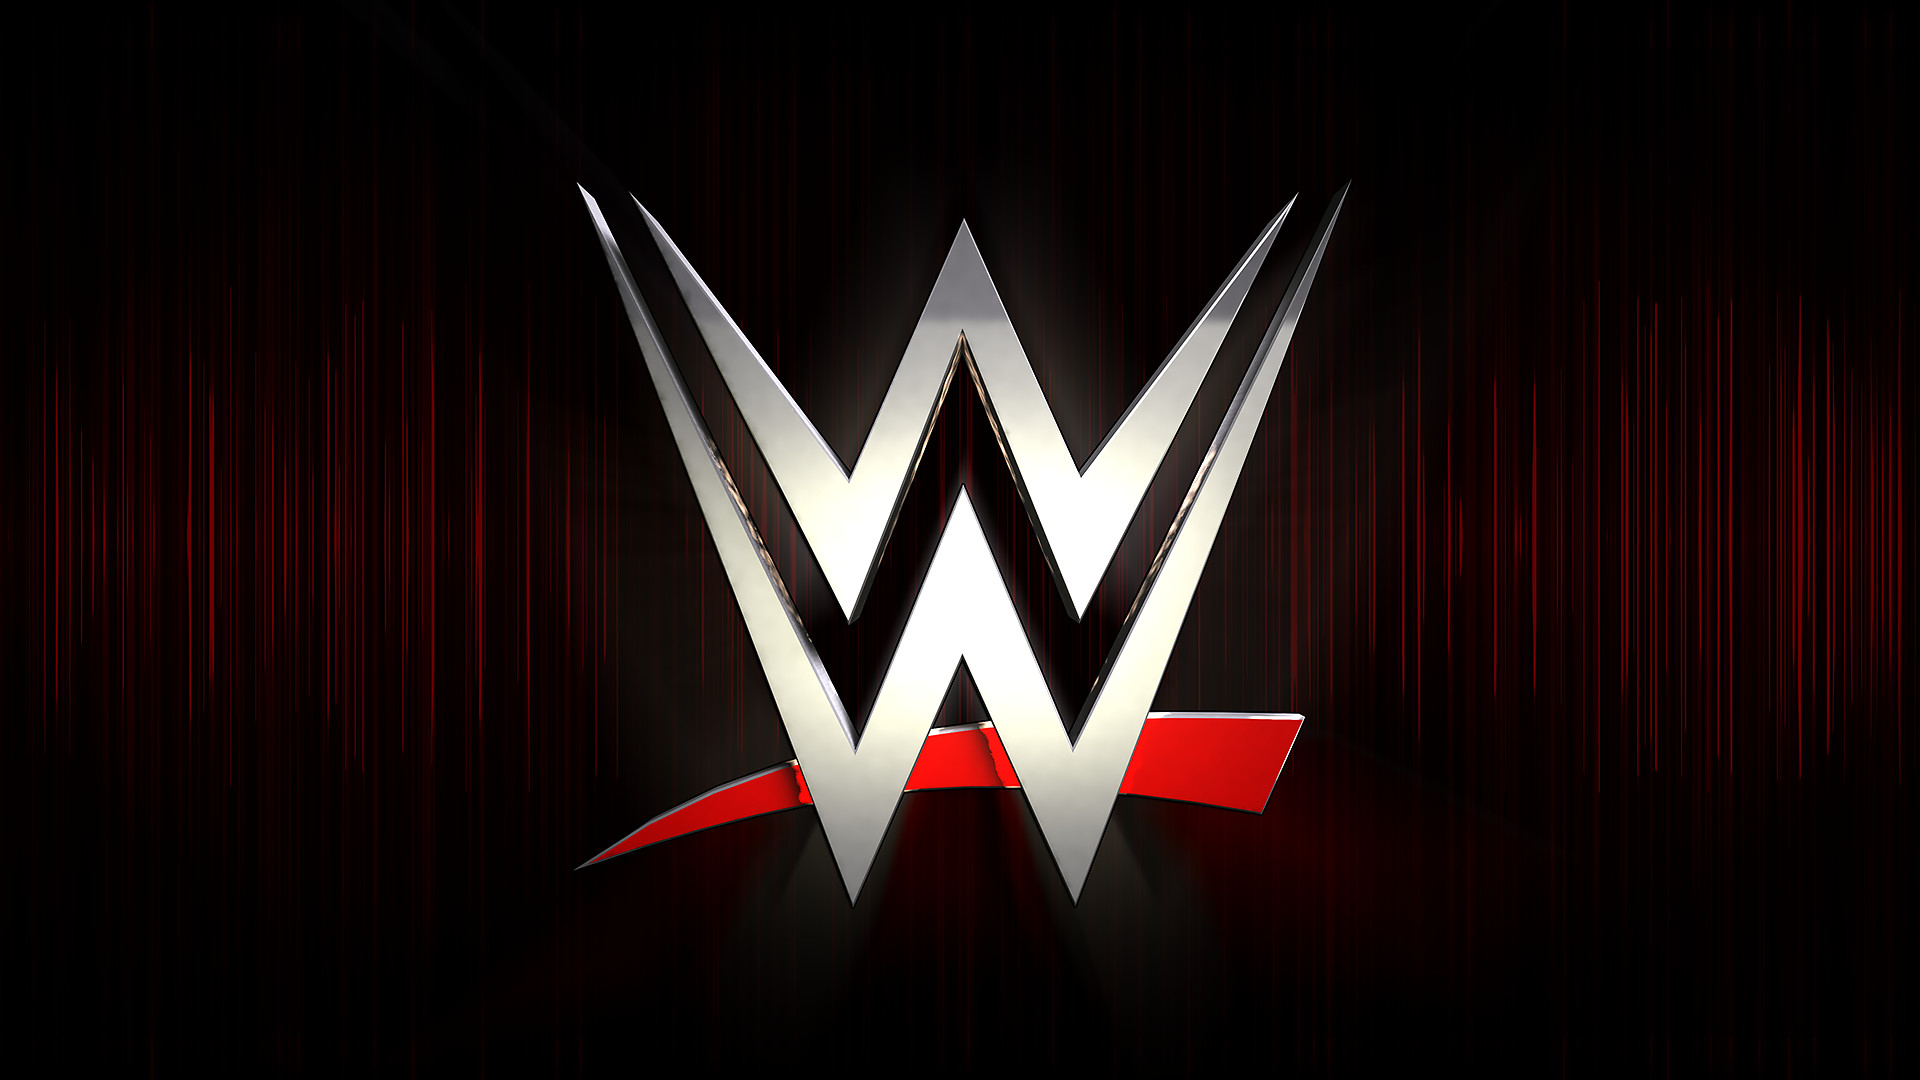 1920x1080 WWE HD Wallpapers Wallpaper | HD Wallpapers | Pinterest | Hd wallpaper,  Wallpaper and Wallpaper free download